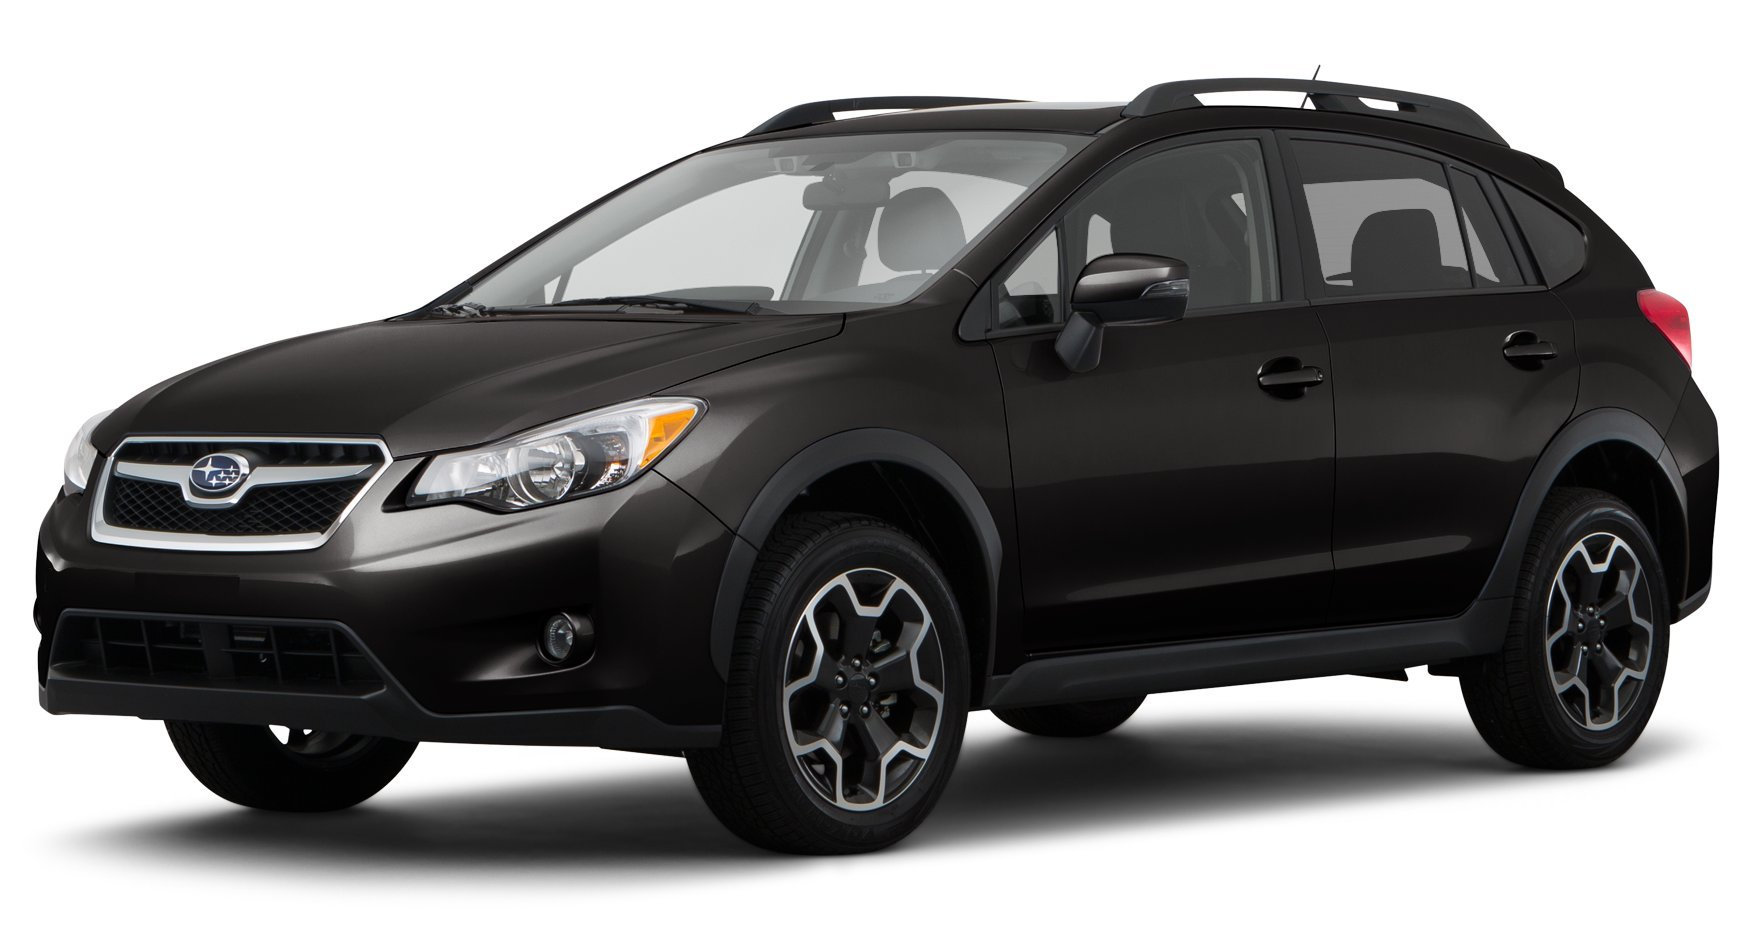 2015 subaru outback reviews images and specs vehicles. Black Bedroom Furniture Sets. Home Design Ideas